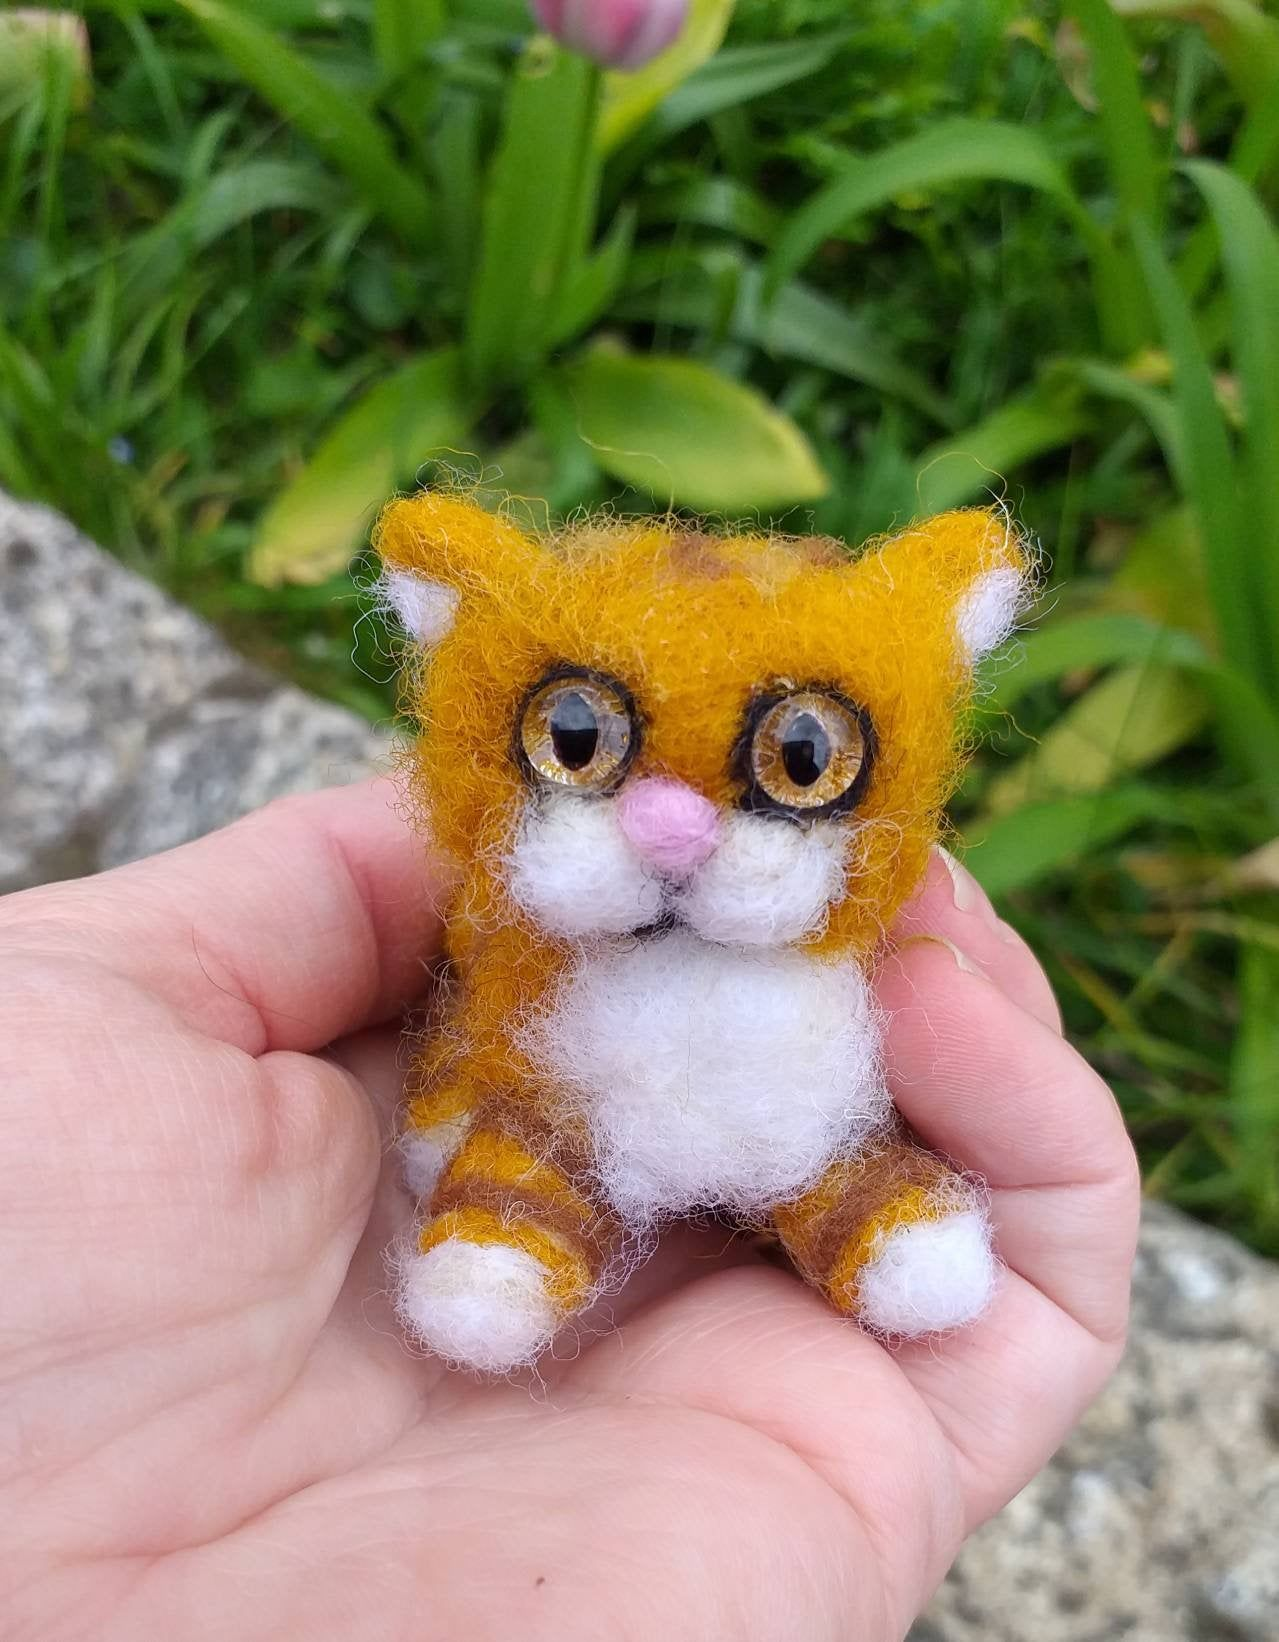 Tiny needle felted cute ginger kitten / cat, handmade collectable or small gift.